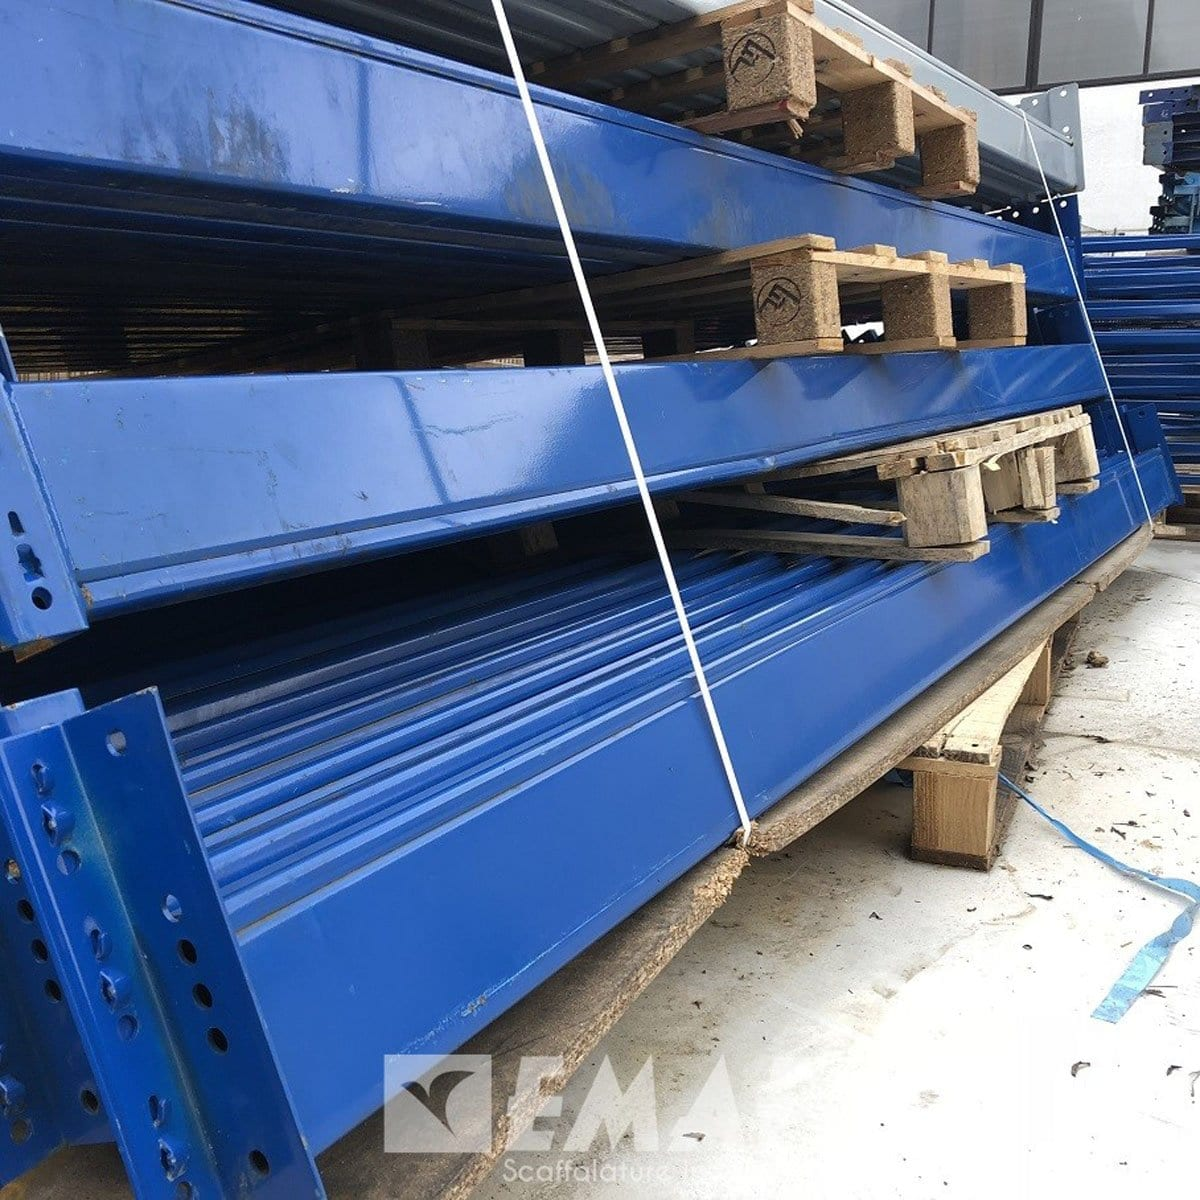 Scaffalature In Ferro Usate.Second Hand Pallet Racking Second Hand Industrial Racking For 90